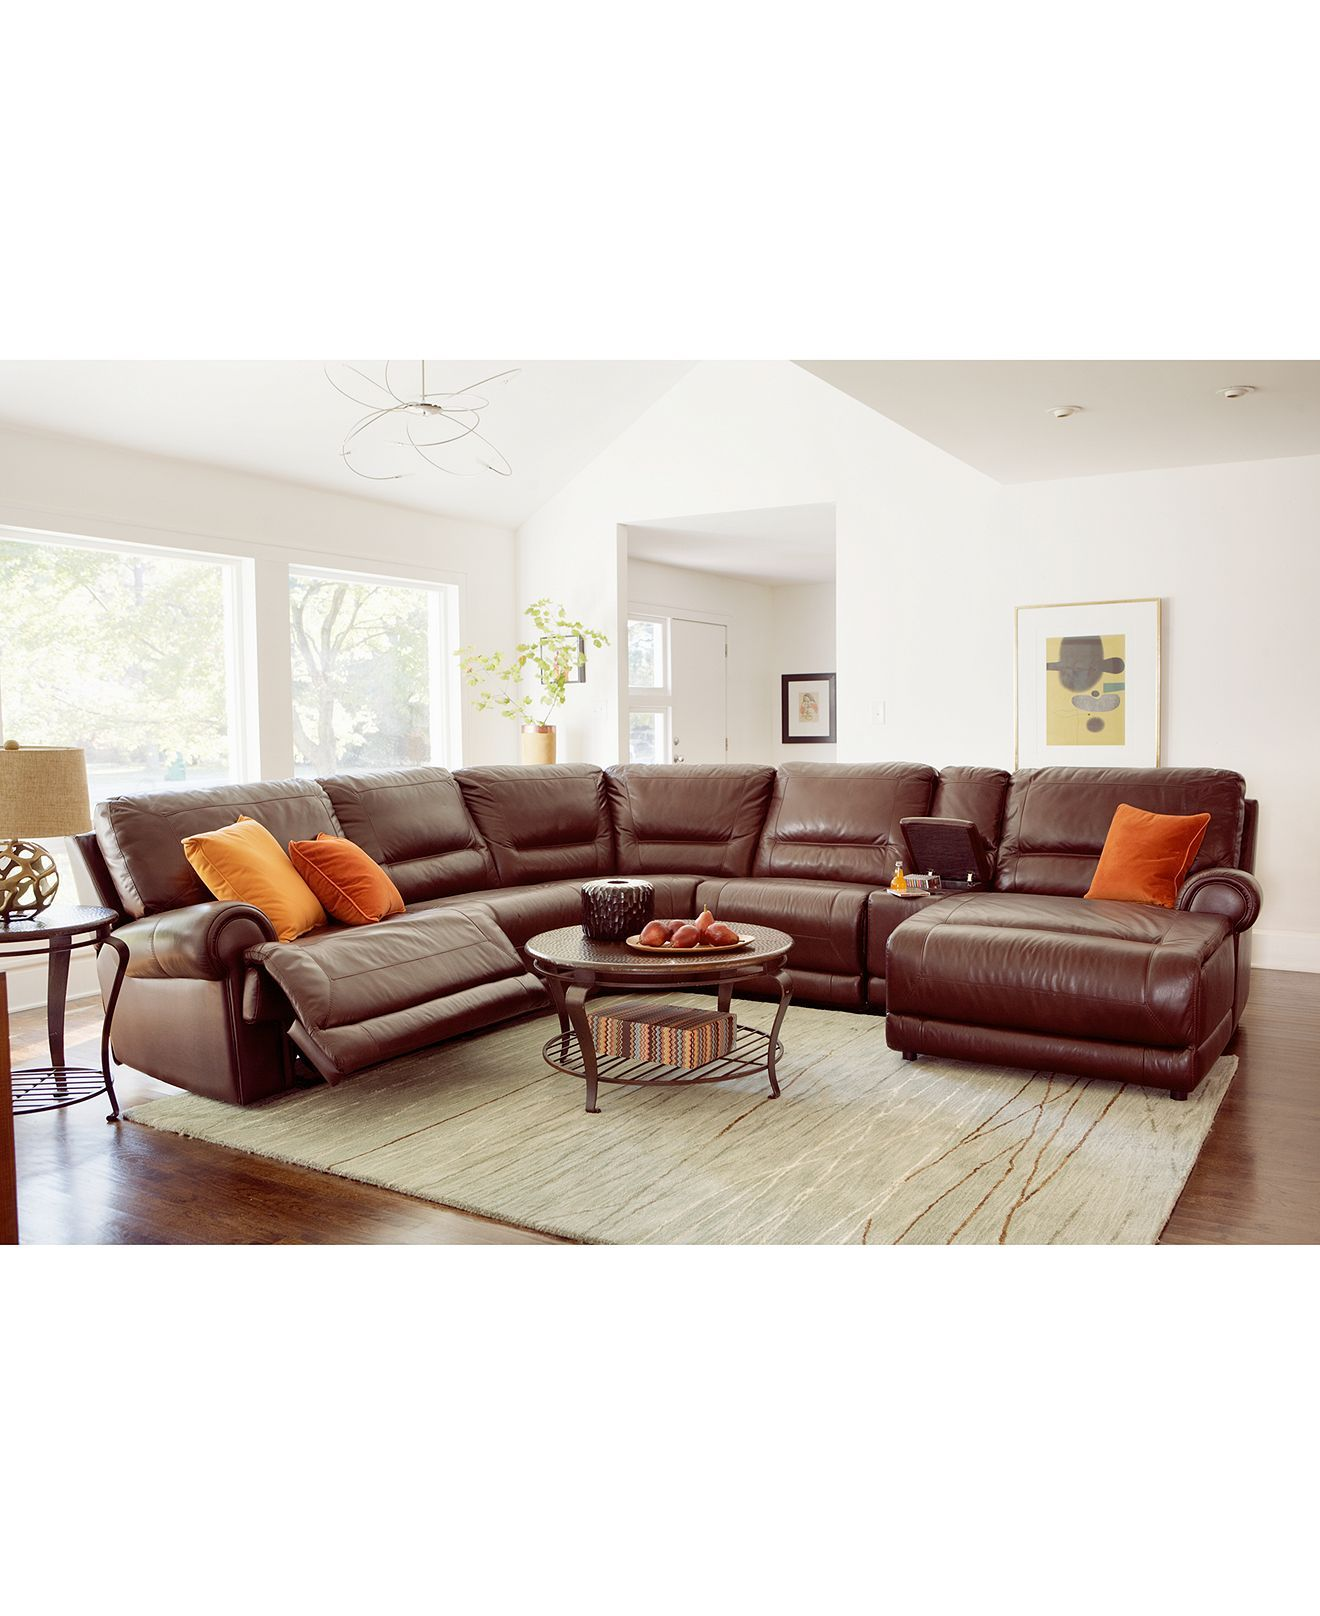 Macys leather sectional. And with power recliners to boot! | Living ...